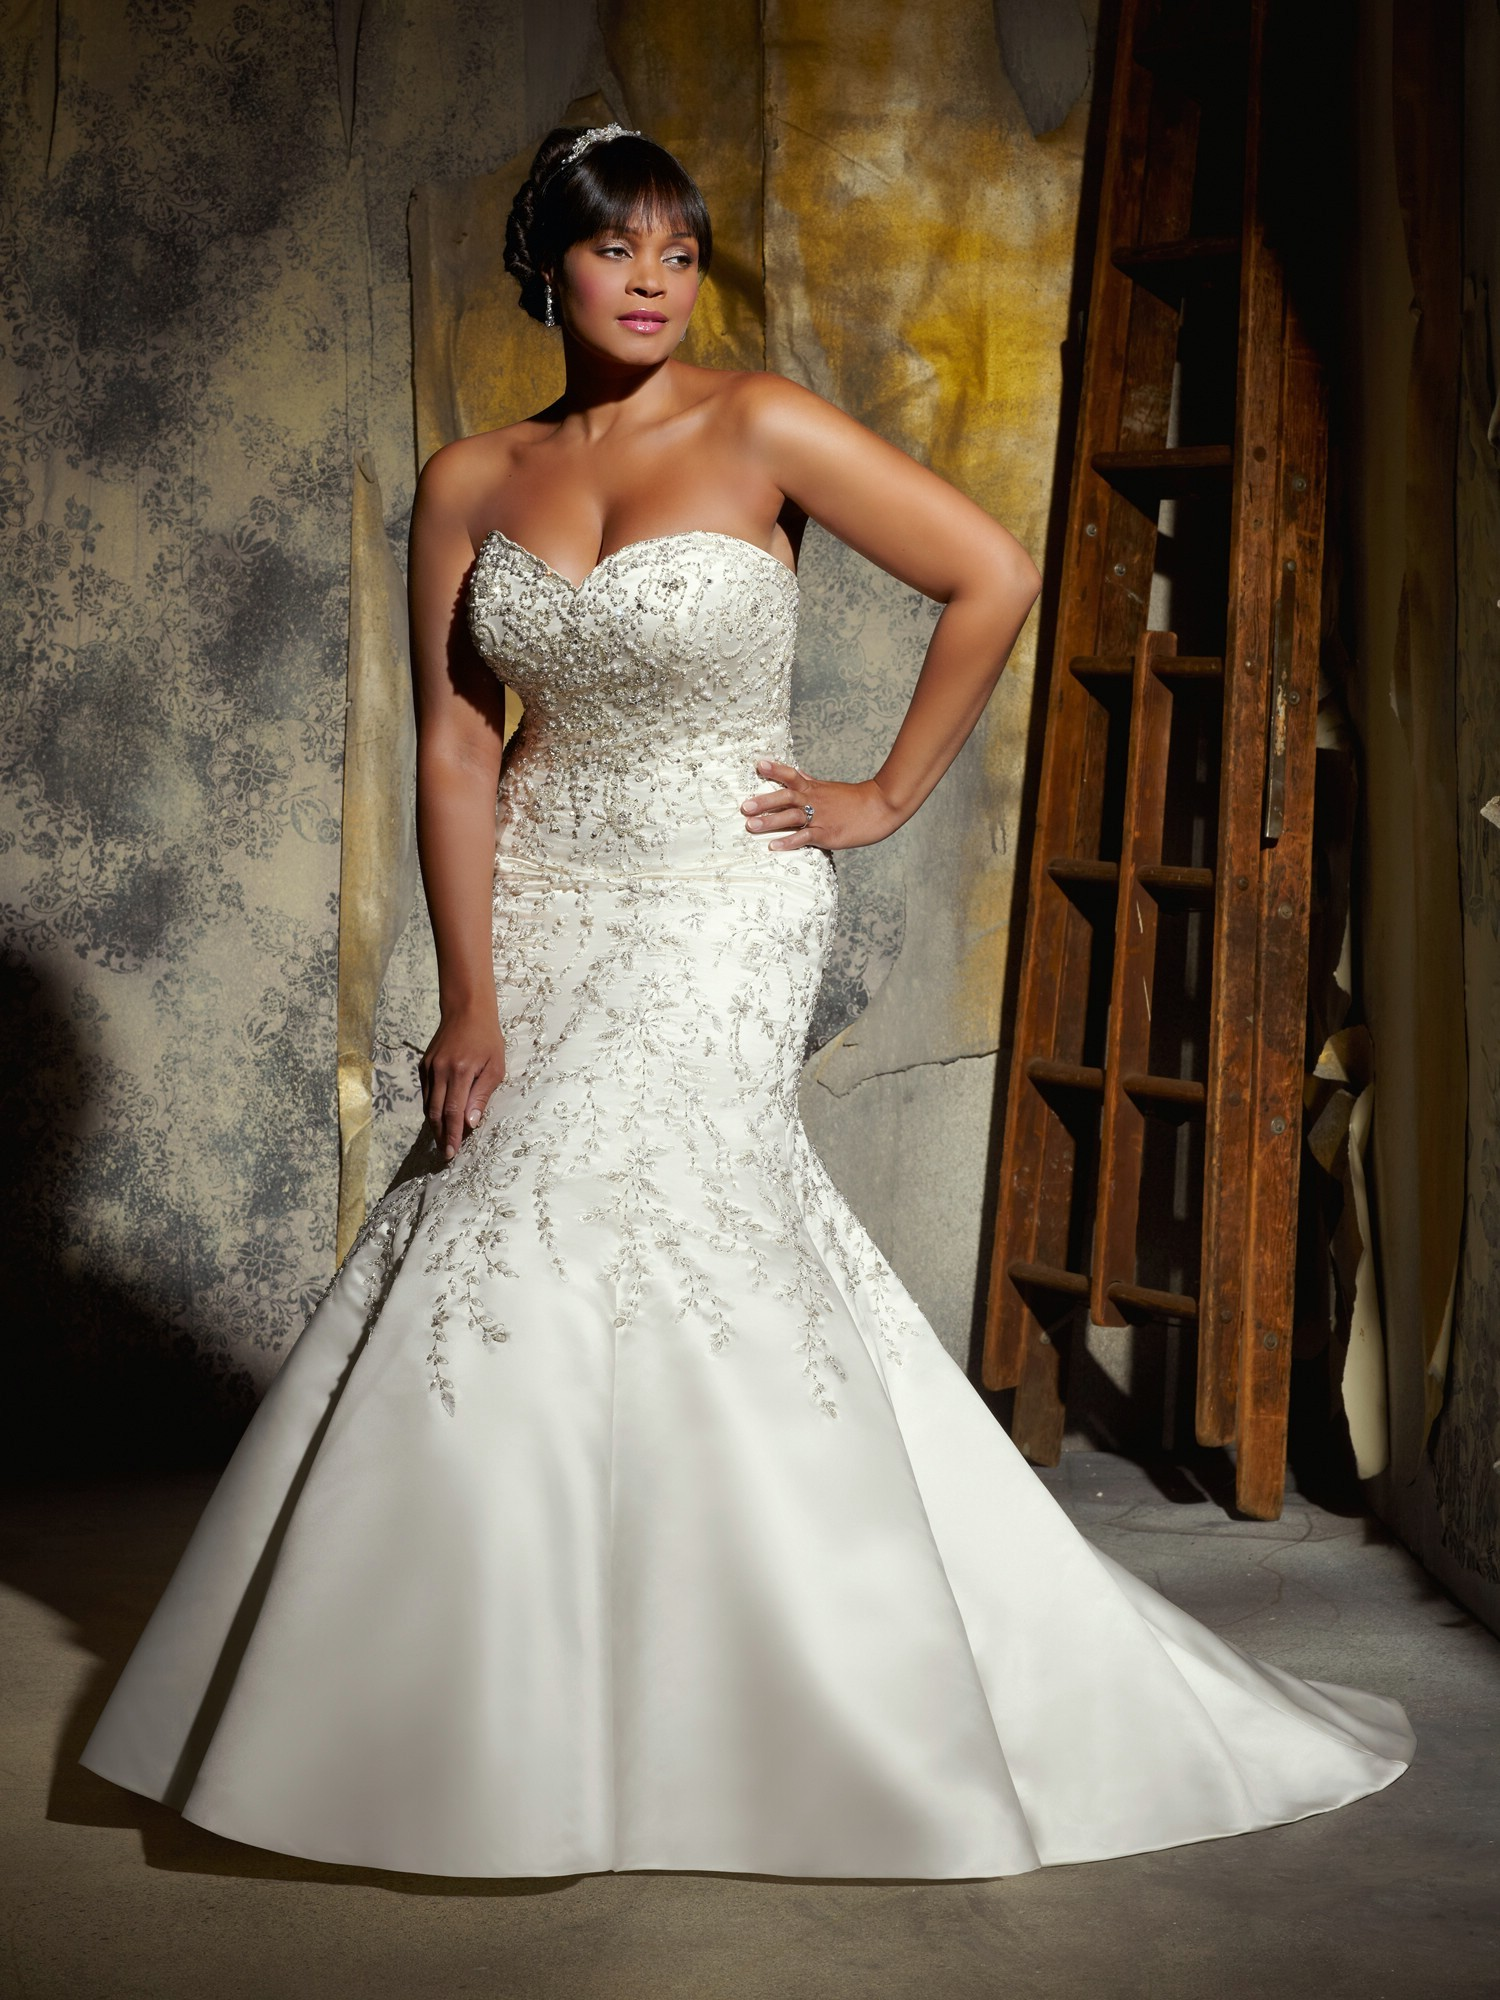 Sangmaestro wedding dress wedding gown bridal for Best wedding dress styles for plus size brides